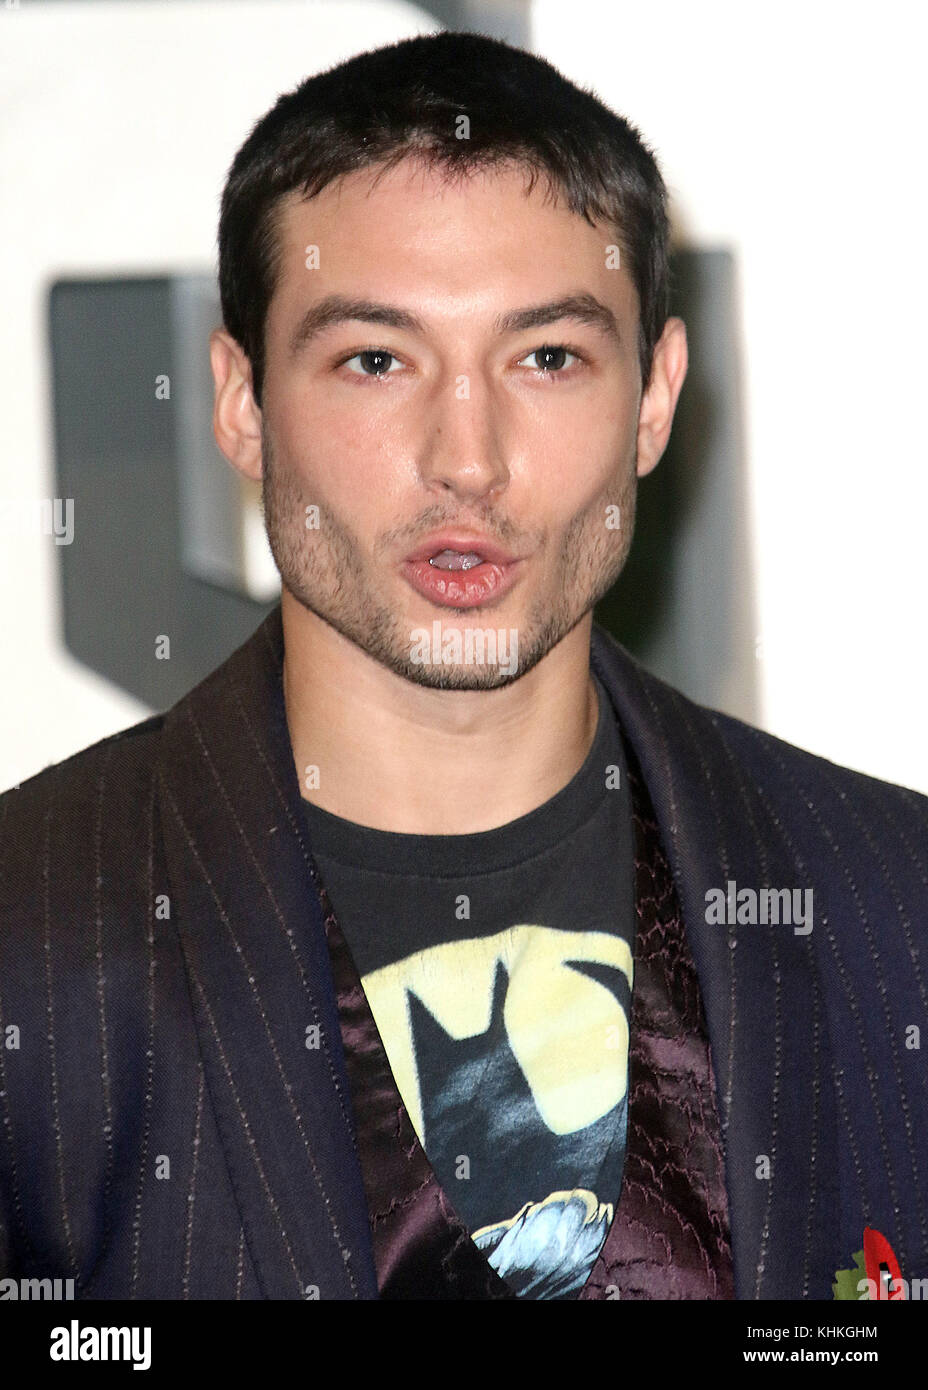 Nov 04, 2017 - Ezra Miller attending 'Justice League' Photocall, The College, Southampton Row in London, - Stock Image